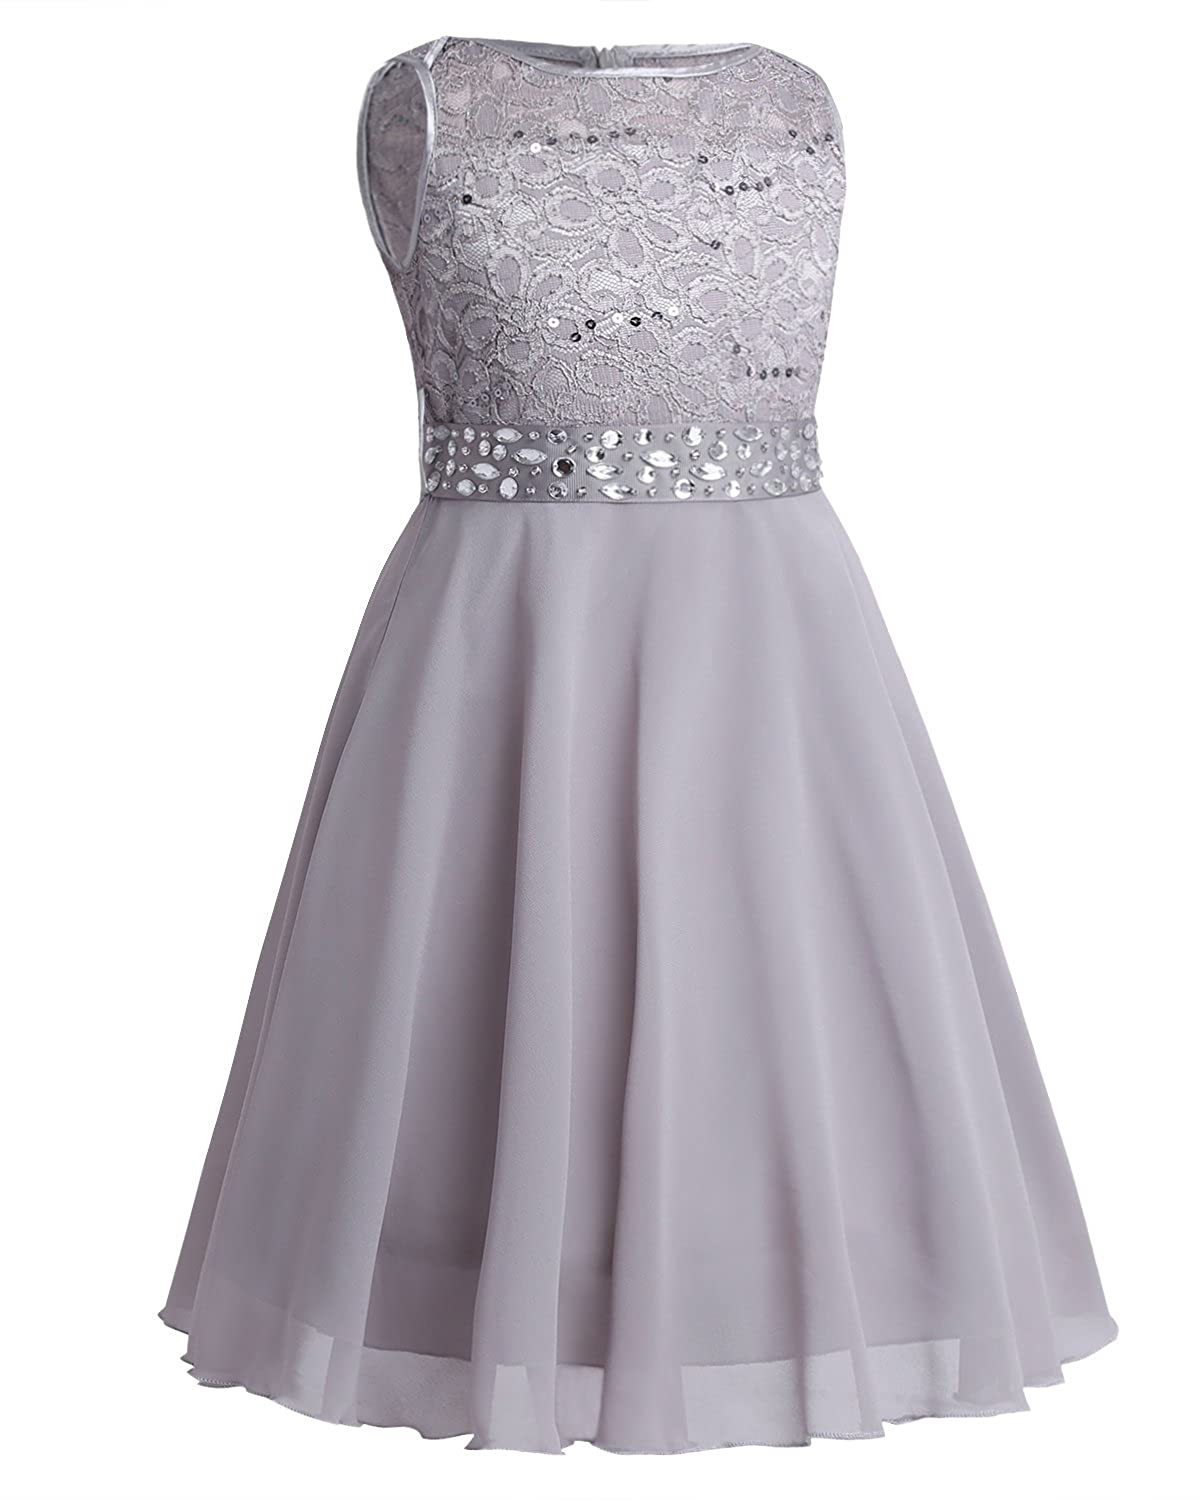 YiZYiF Kids Girls Sequins Lace Floral Wedding Pageant Party Formal Ball Gown Flower Dress